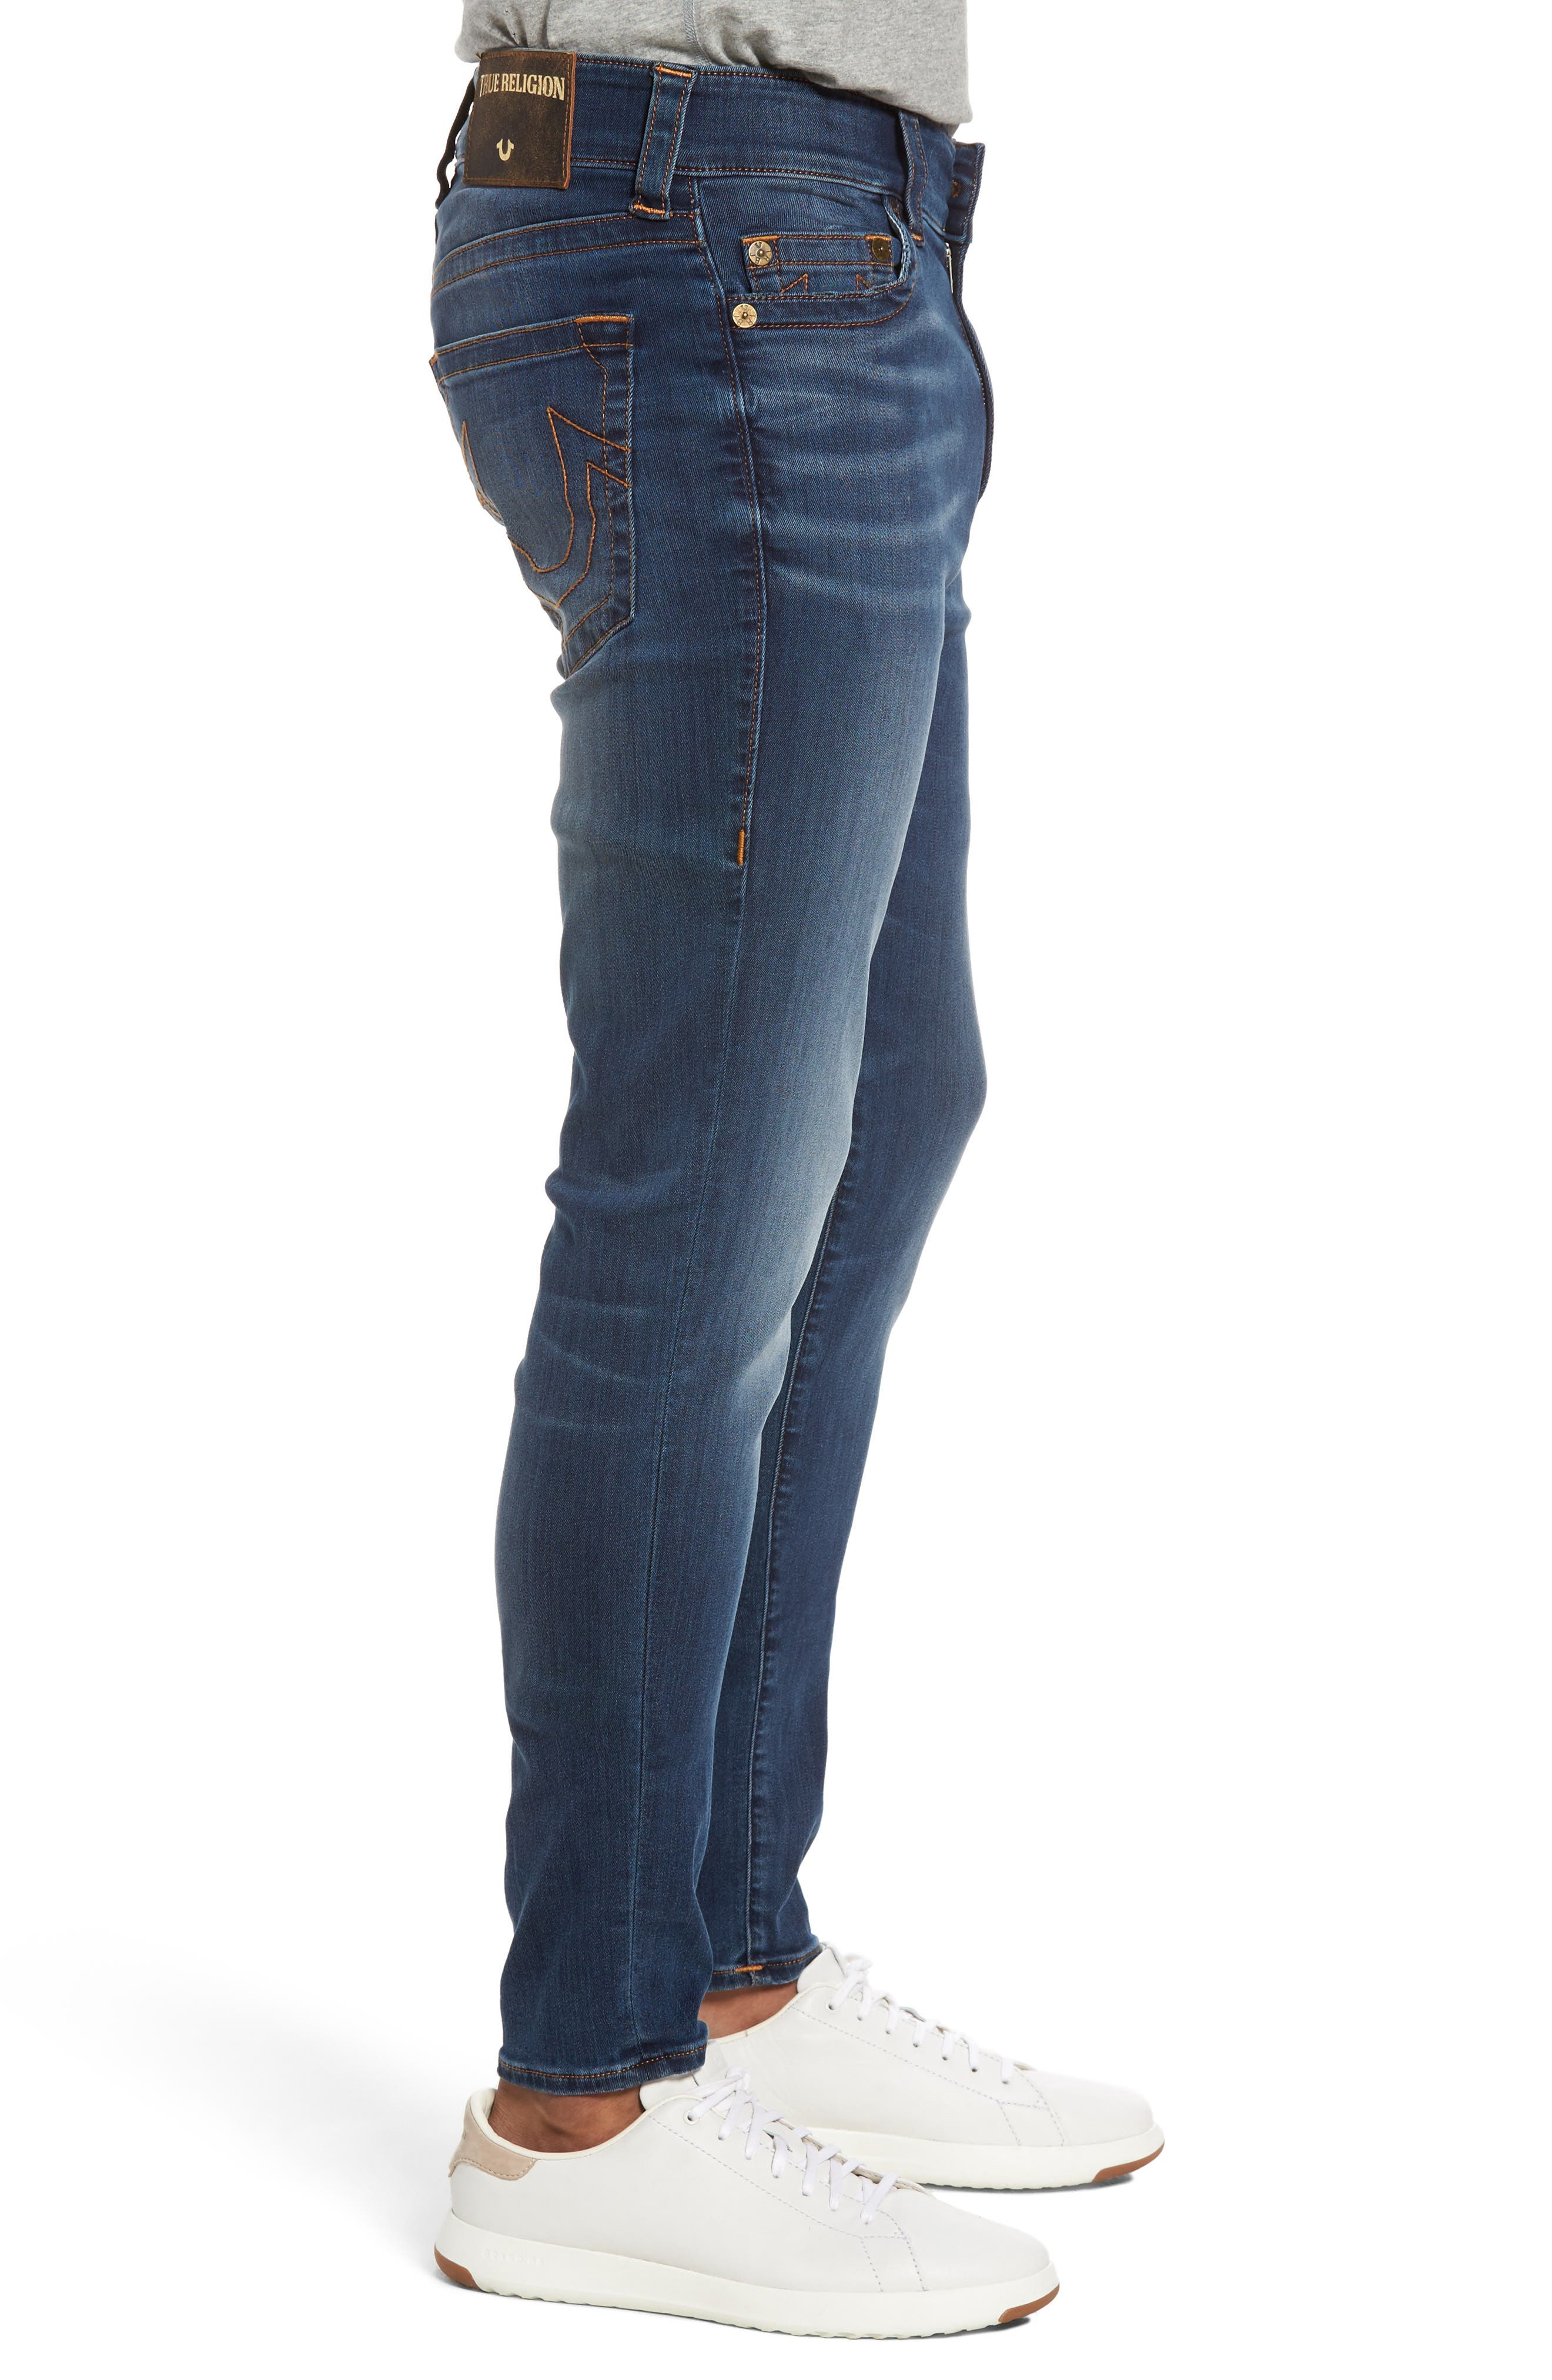 Jack Skinny Fit Jeans,                             Alternate thumbnail 3, color,                             402